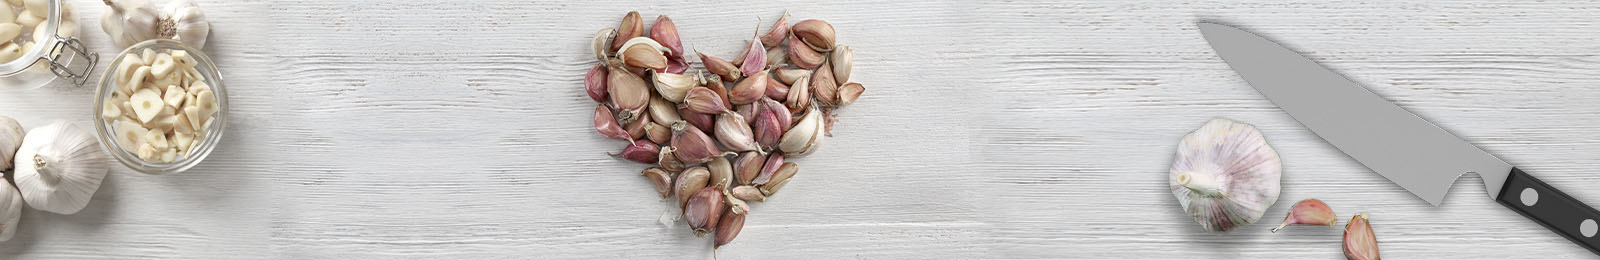 Garlic: 10 Health Benefits